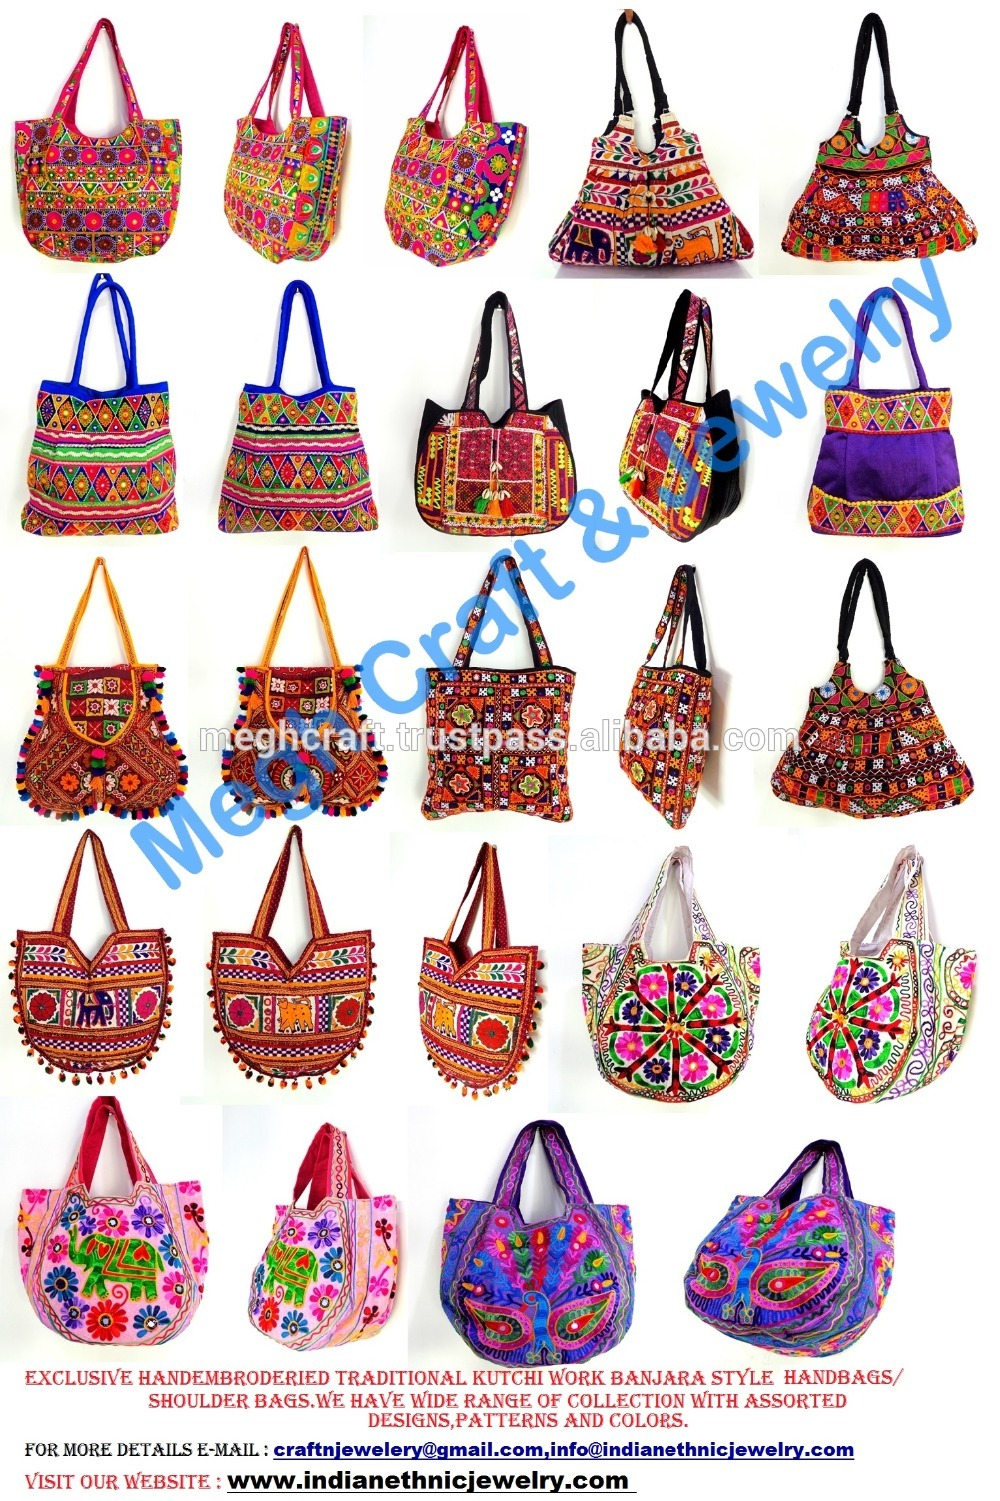 Kutchi Embroidery work banjara bag.